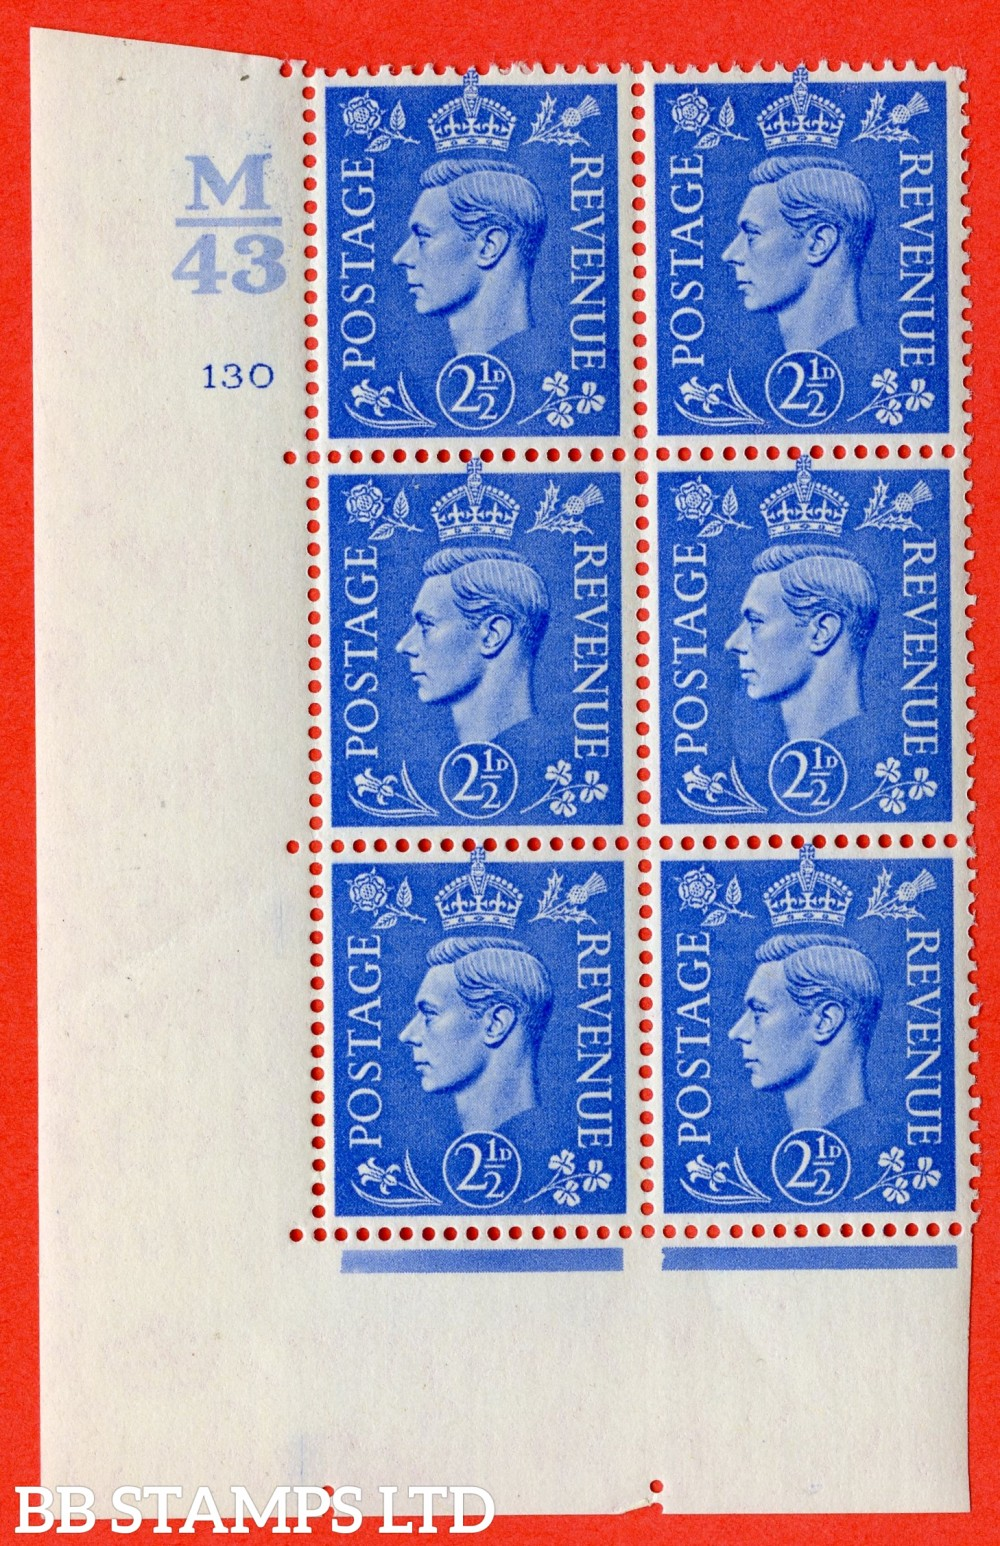 "SG. 489. Q14. 2½d Light ultramarine. A fine mounted mint "" Control M43 cylinder 130 no dot "" control block of 6 with perf type 5 E/I."